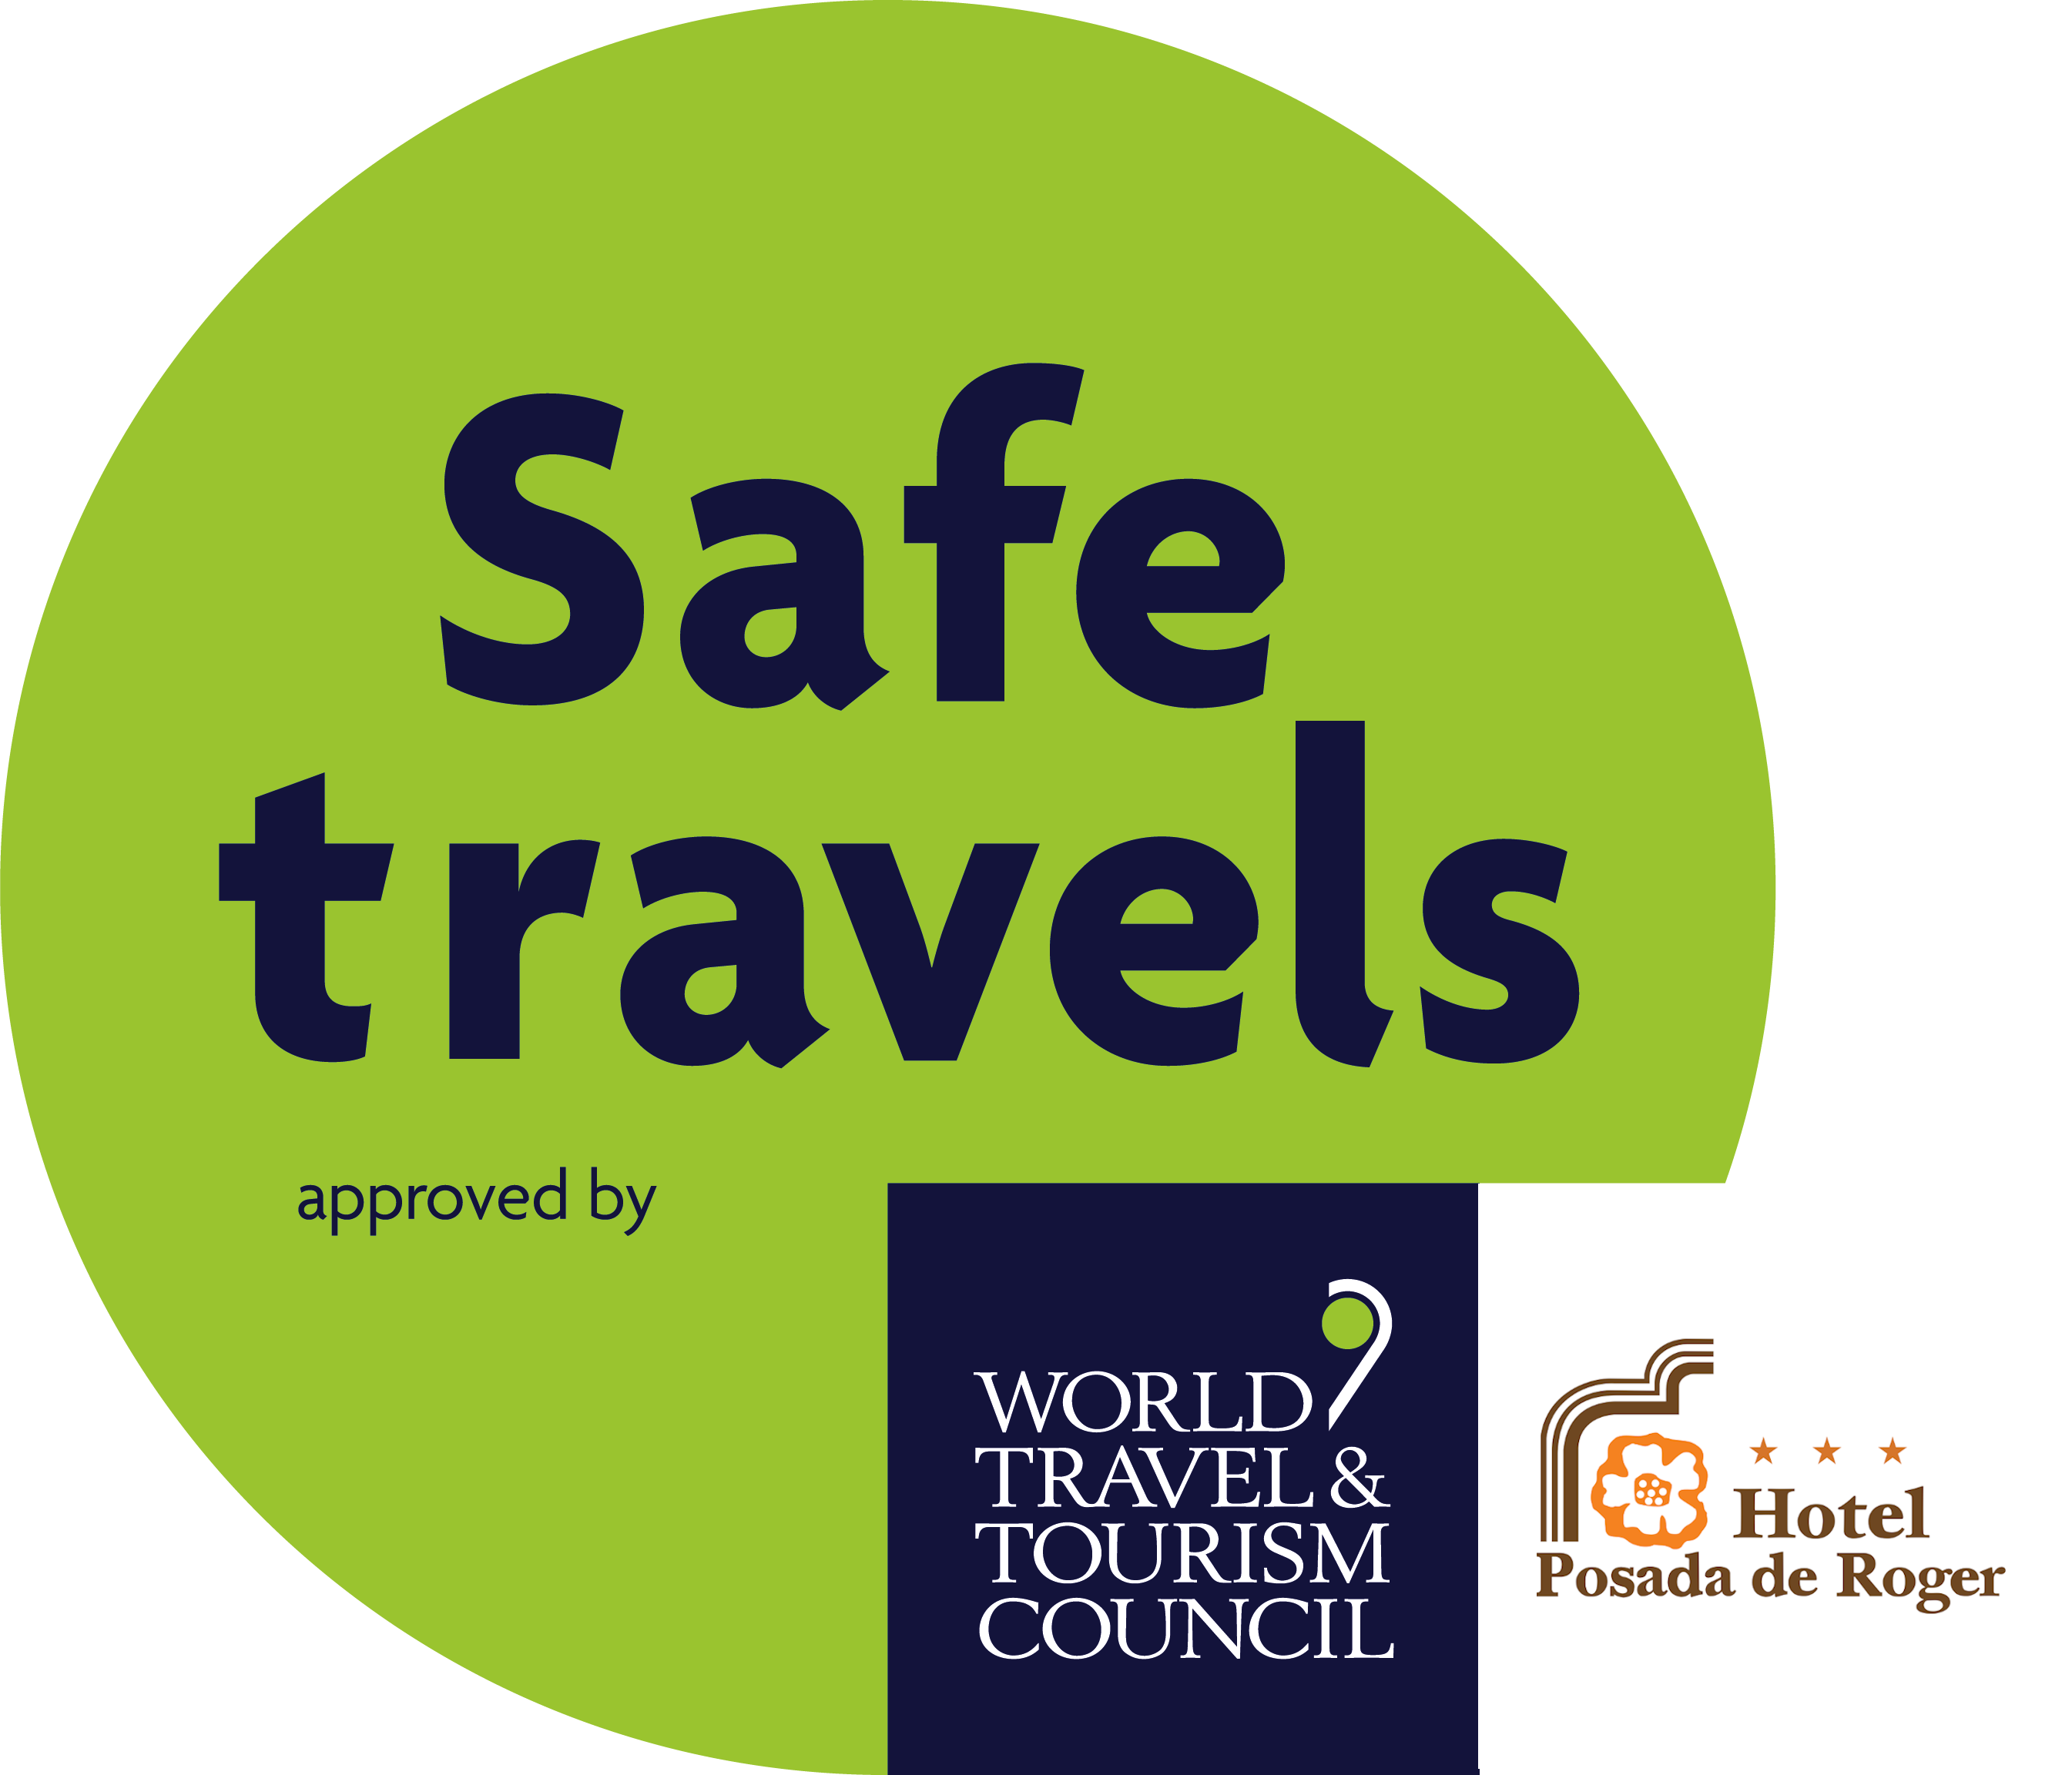 Safe travels approved by world travel and tourism council